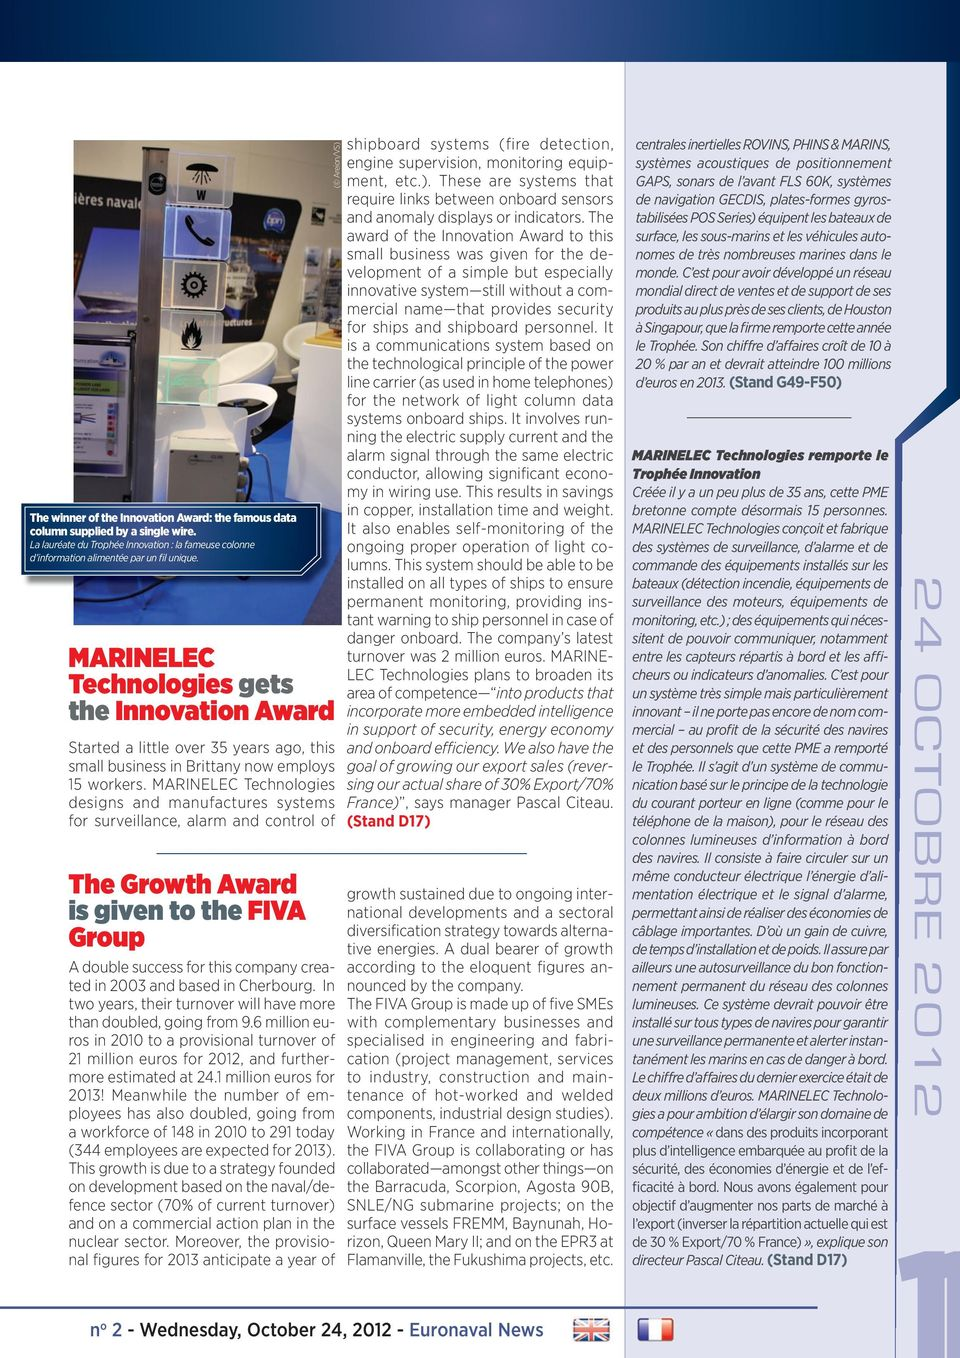 MARINELEC Technologies designs and manufactures systems for surveillance, alarm and control of The Growth Award is given to the FIVA Group A double success for this company created in 2003 and based